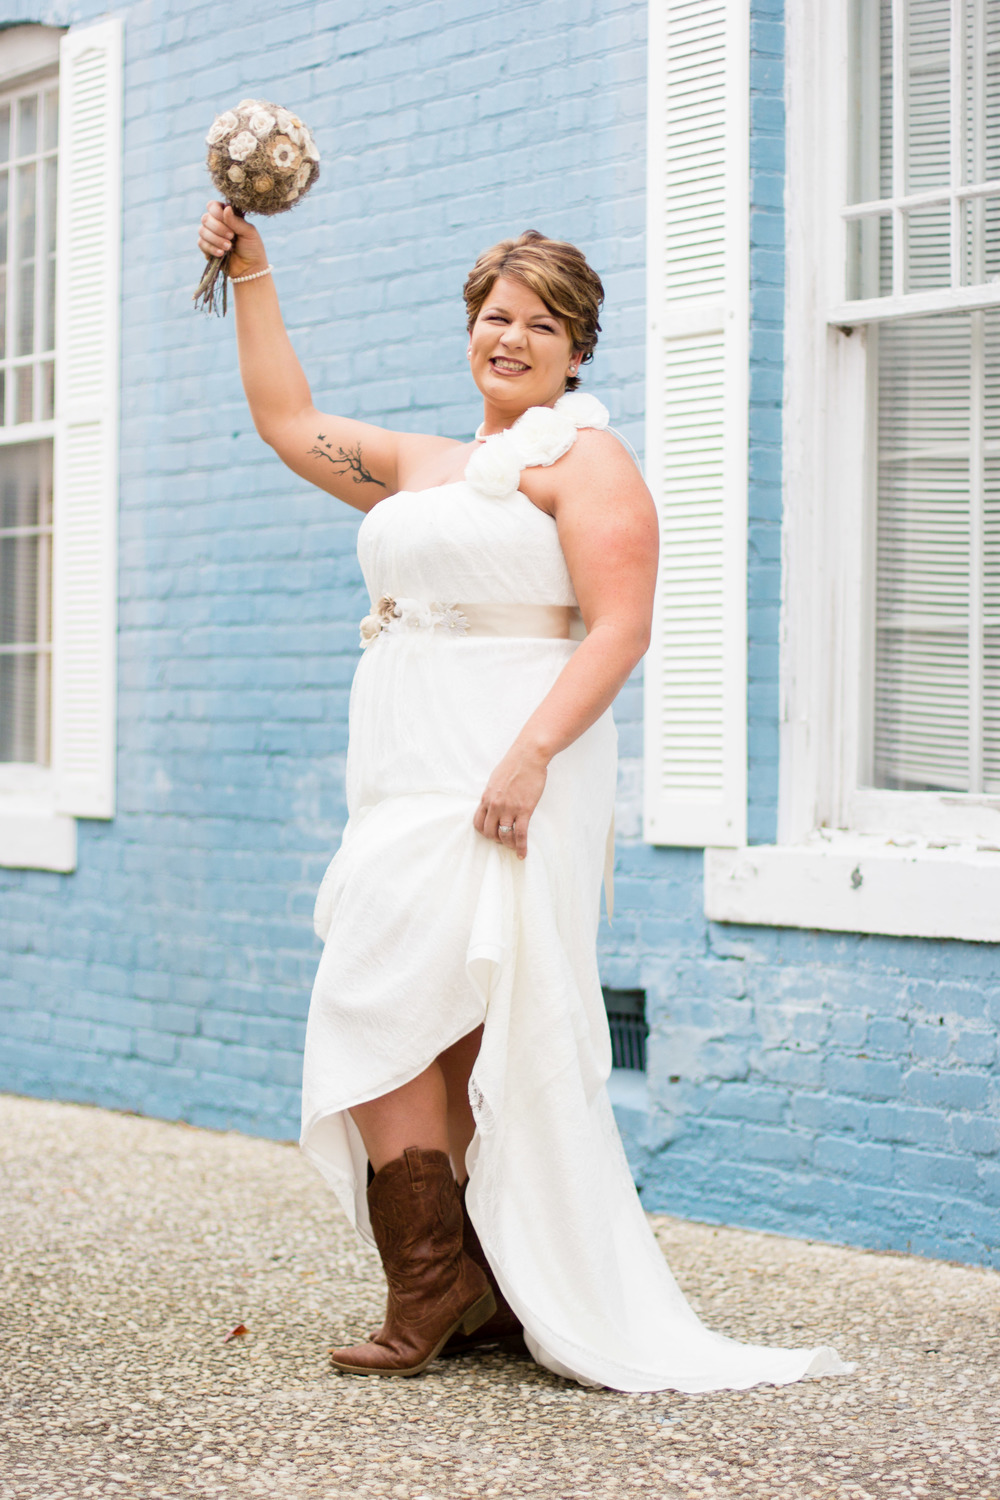 Cowboy Boots Western Wedding | DIY Wedding | Bridal Portraits for Karen | Greenville NC Wedding Photographer | Bridal Pose Ideas | www.memoriesbybryant.com